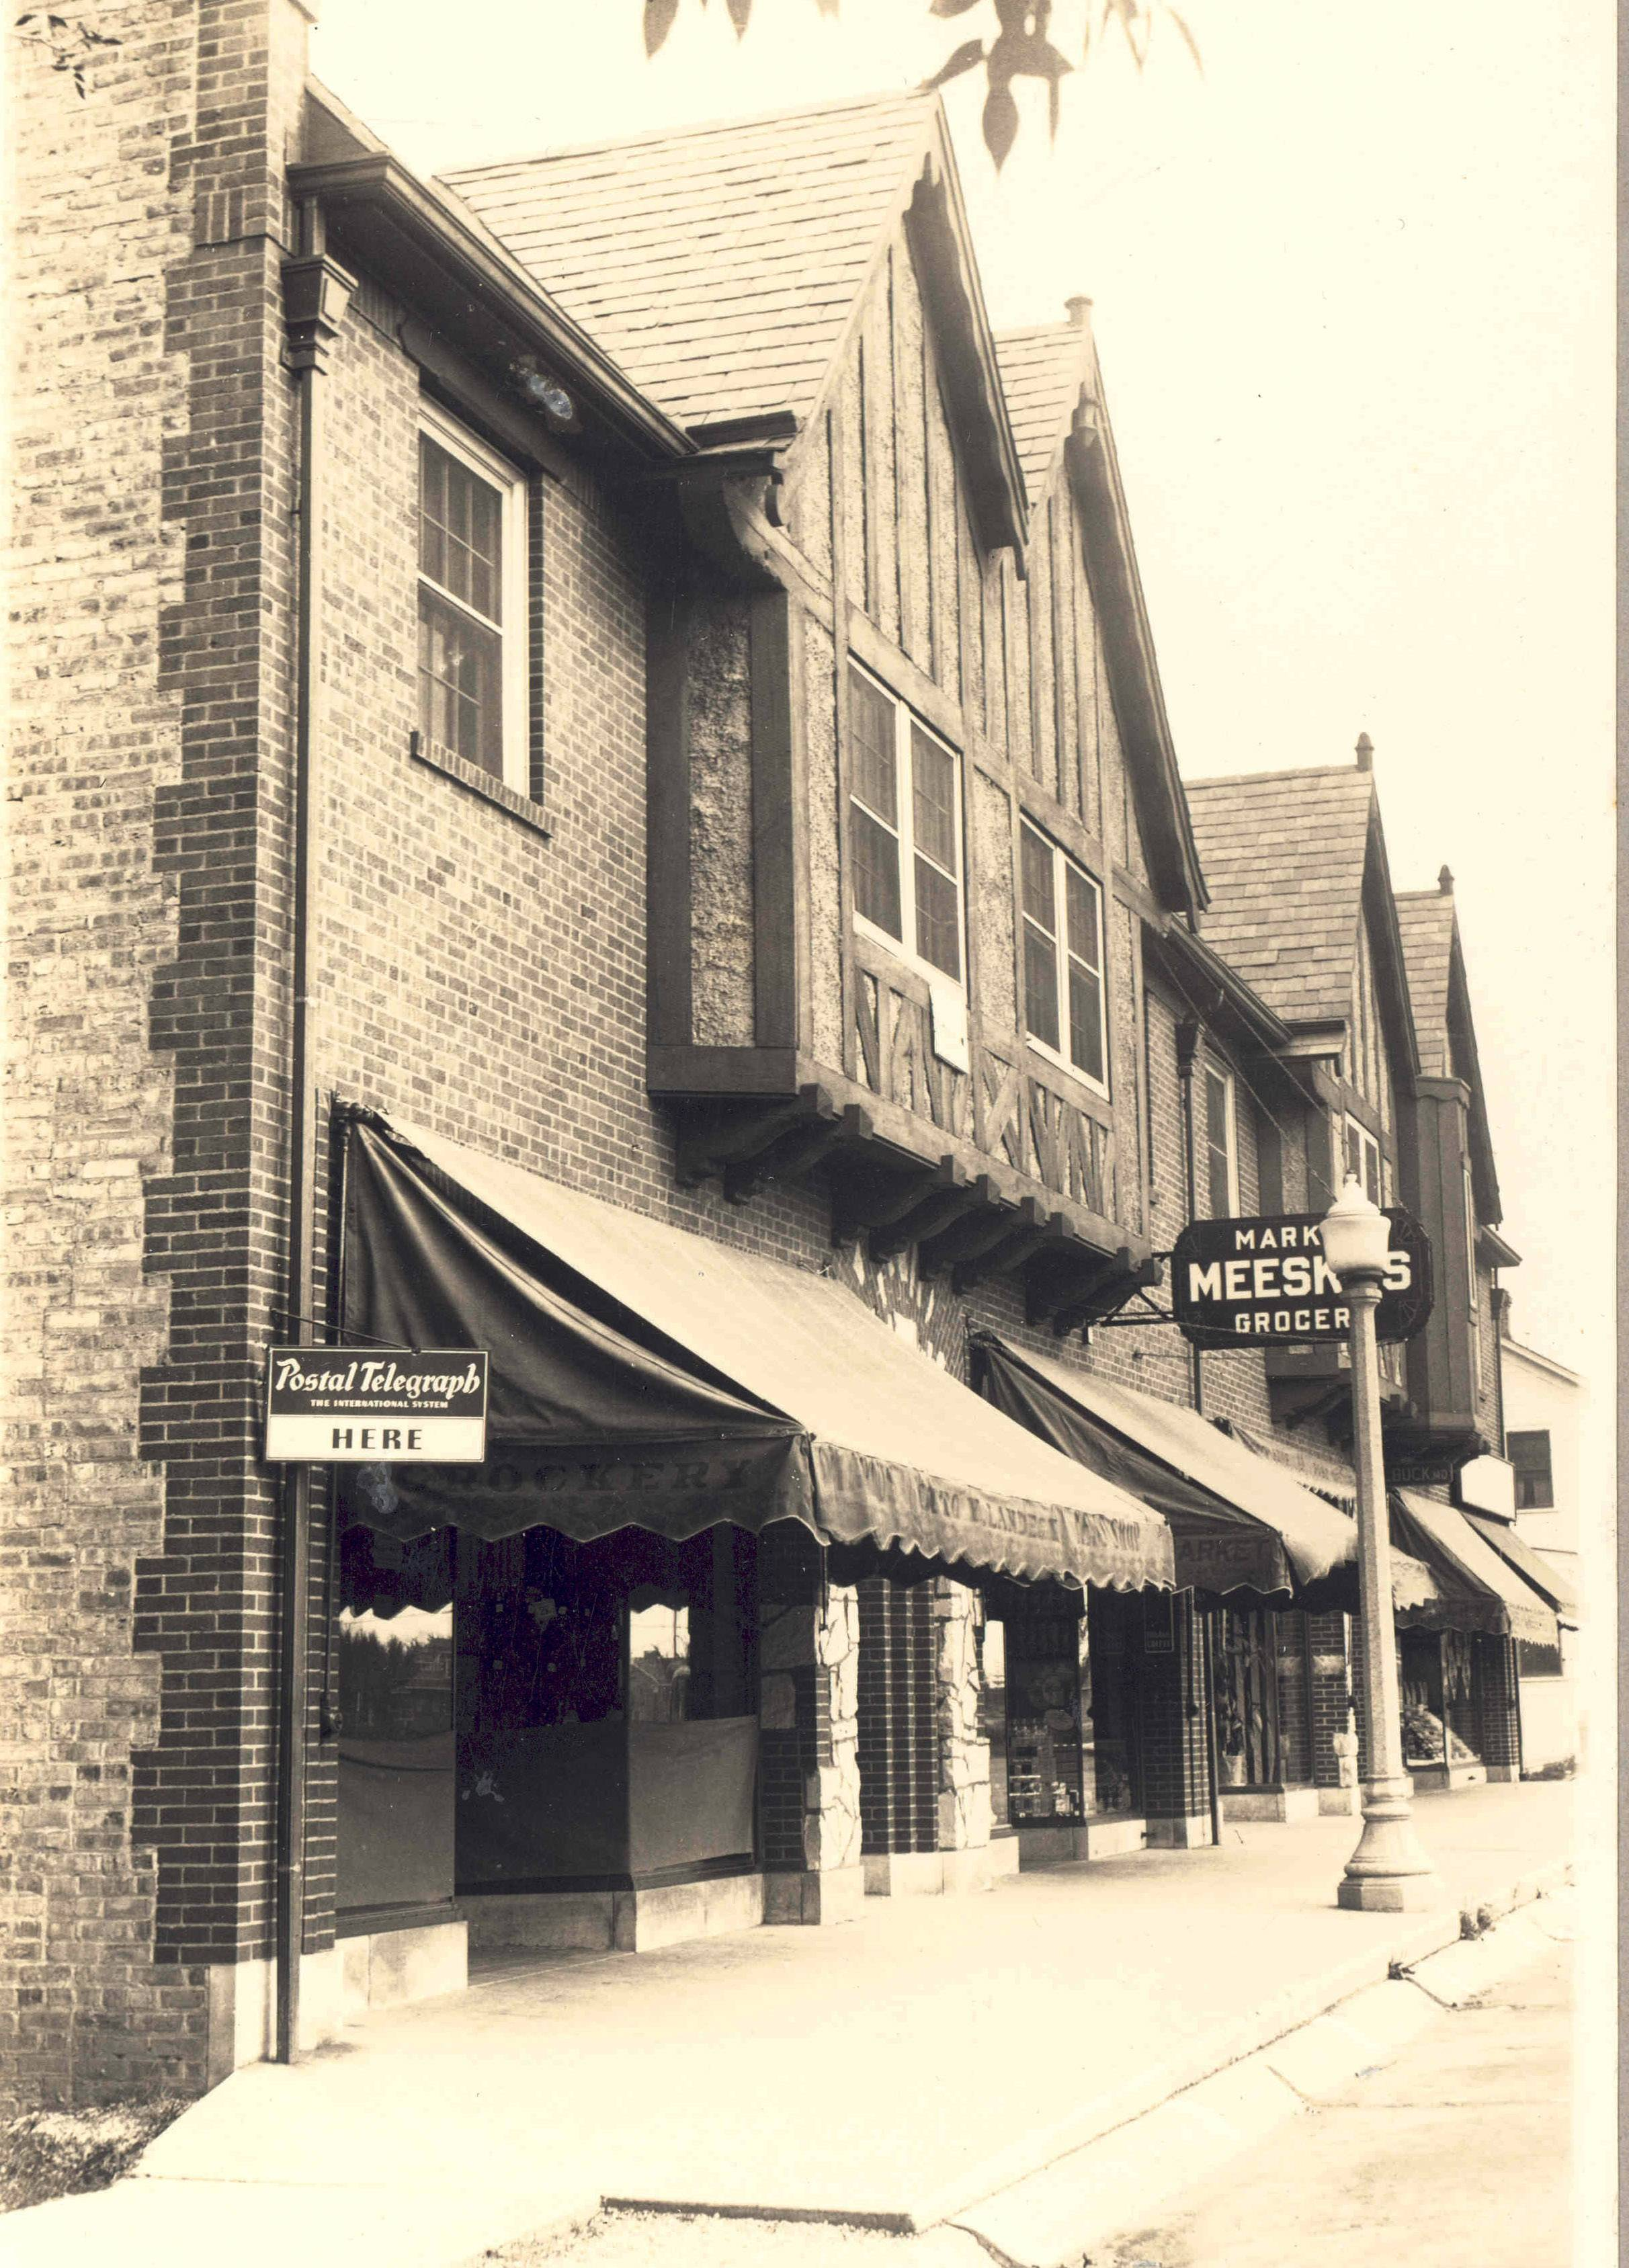 Here is another picture of the original Busse building looking south on Main Street.